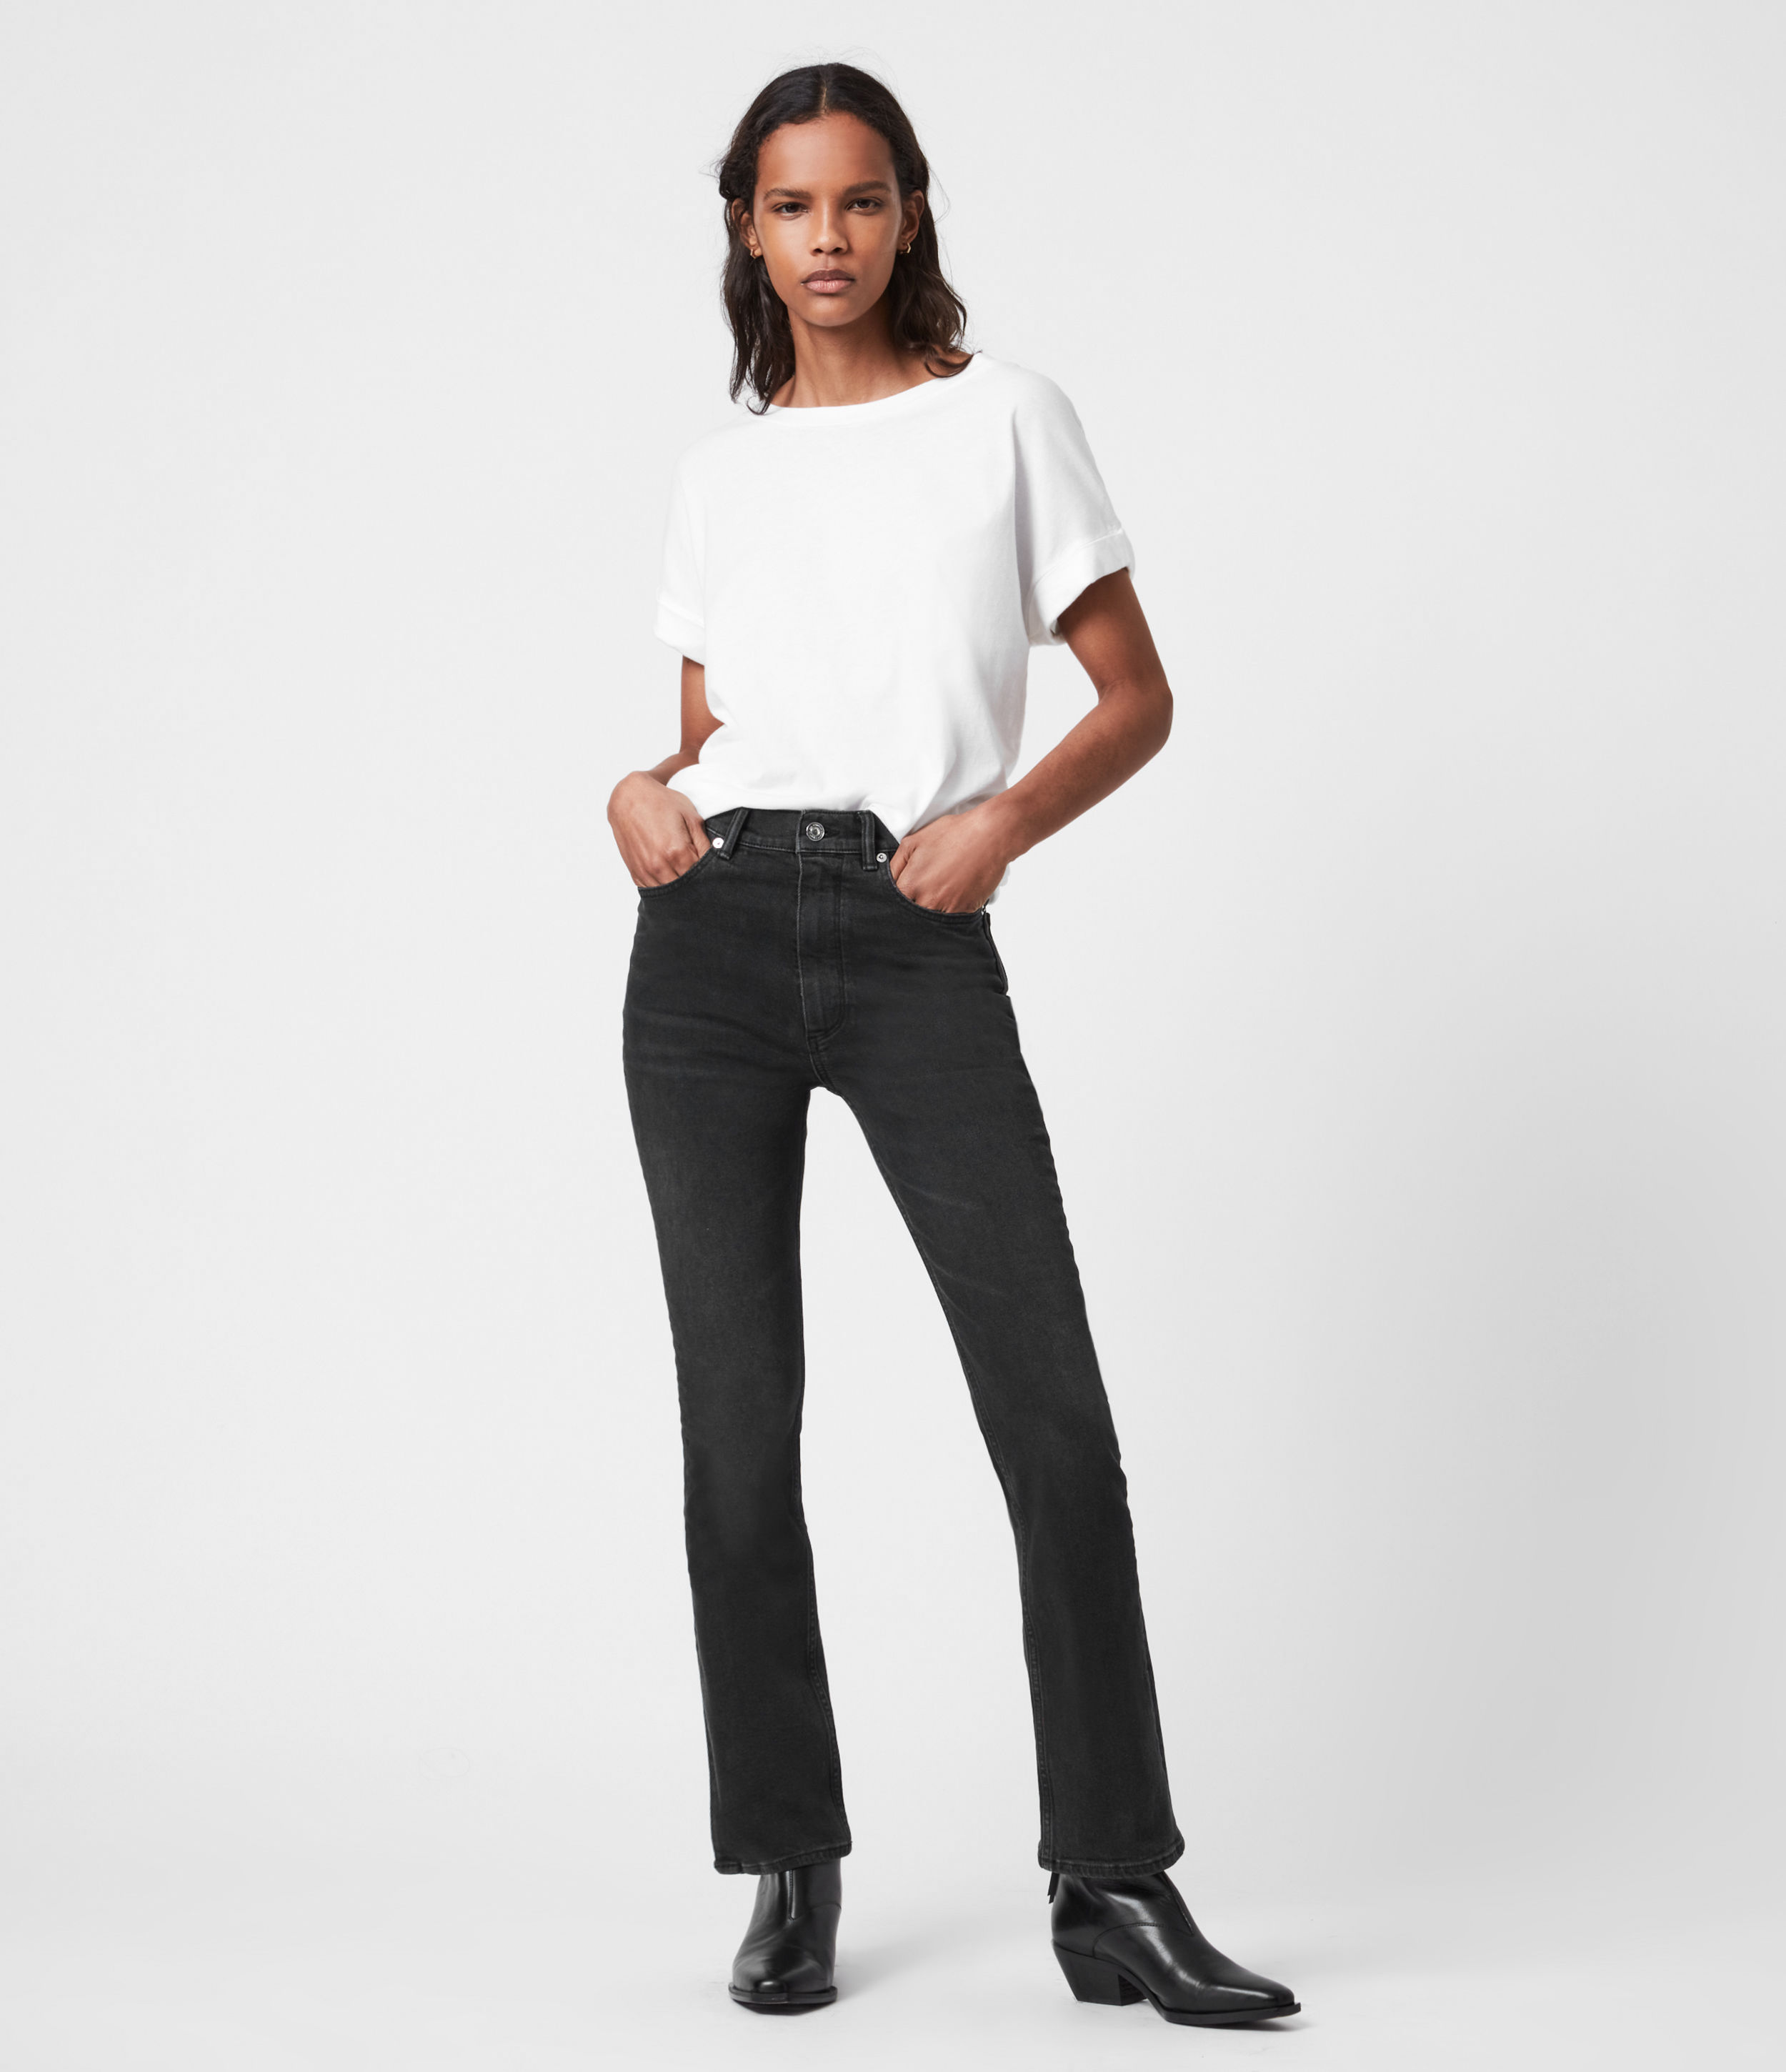 AllSaints Womens Ciara High-Rise Bootcut Jeans, Washed Black, Size: 24